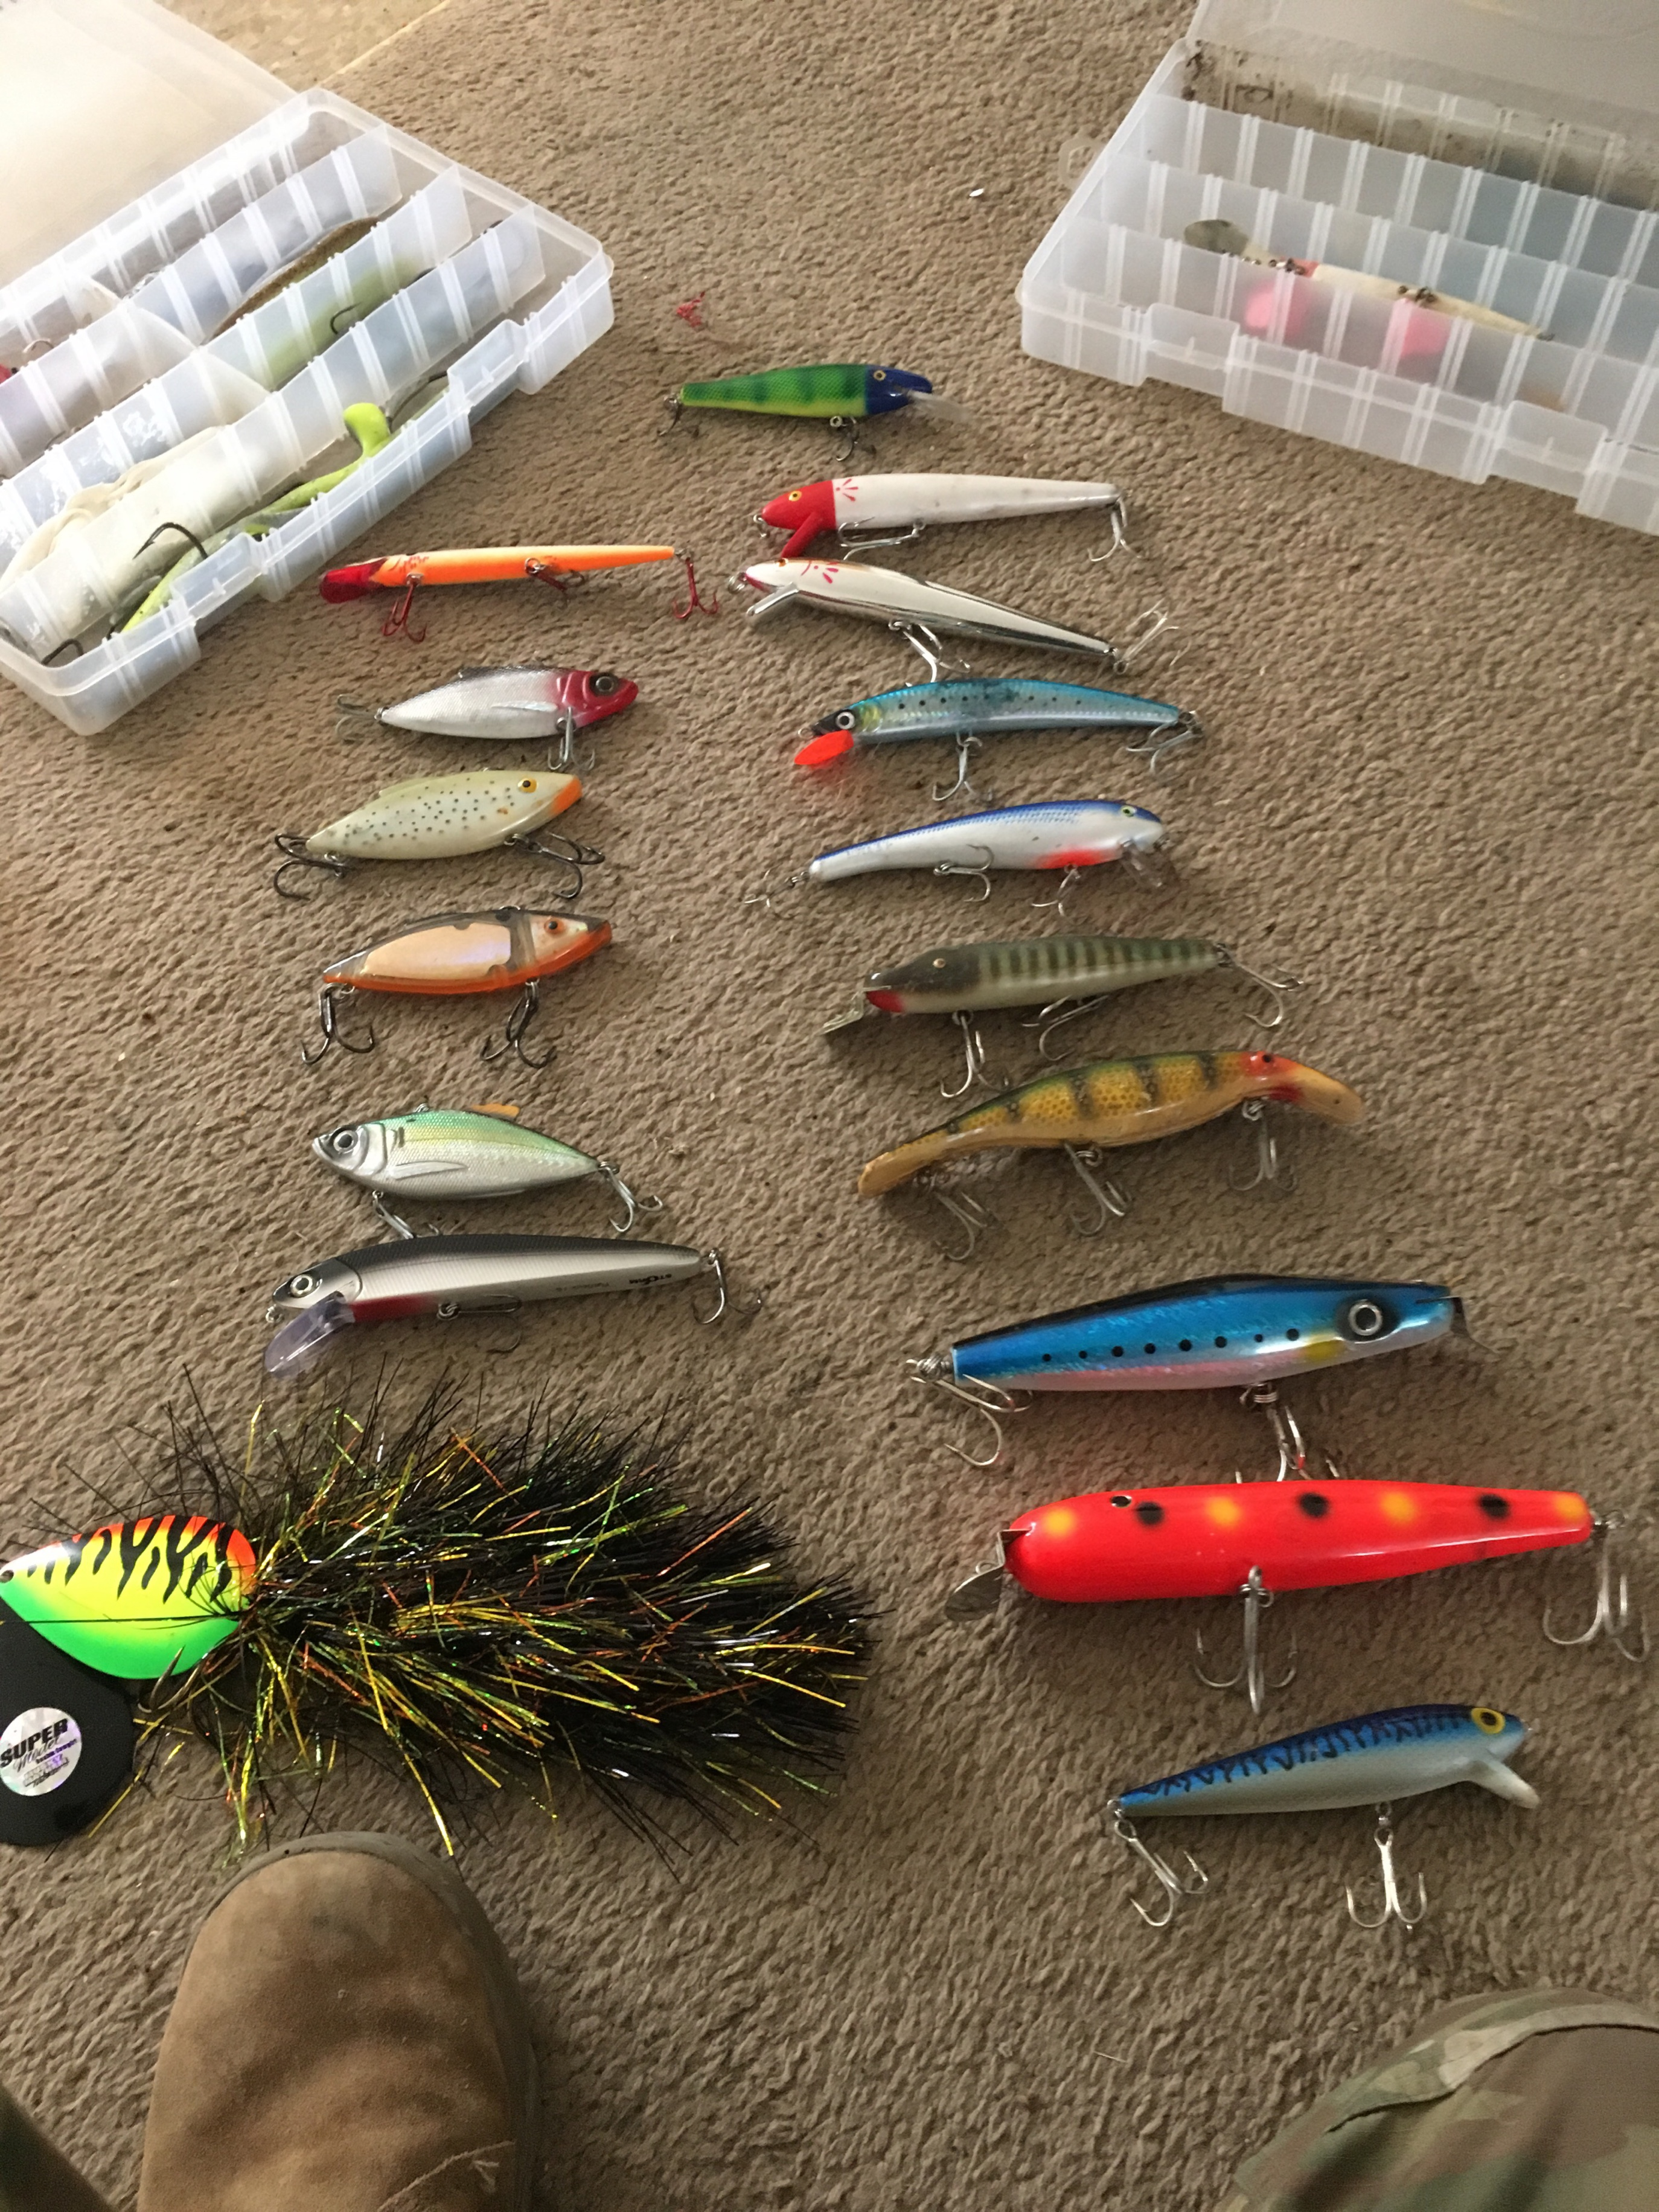 Musky and pike fishing lures - Classifieds - Buy, Sell